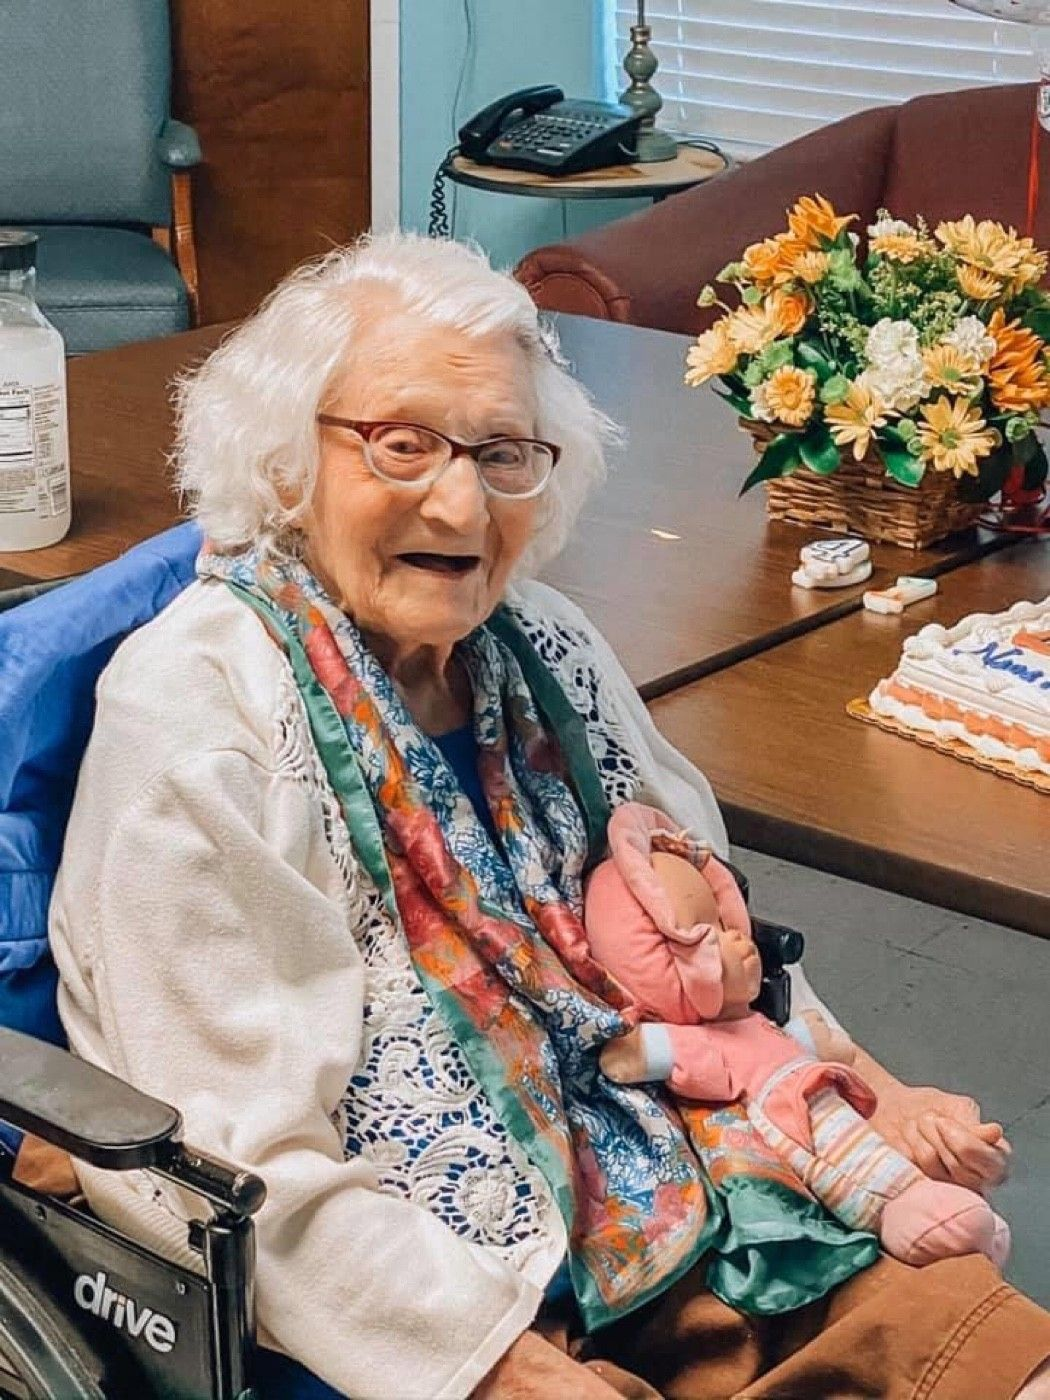 104 year-old Florence recovers from COVID19 according to family